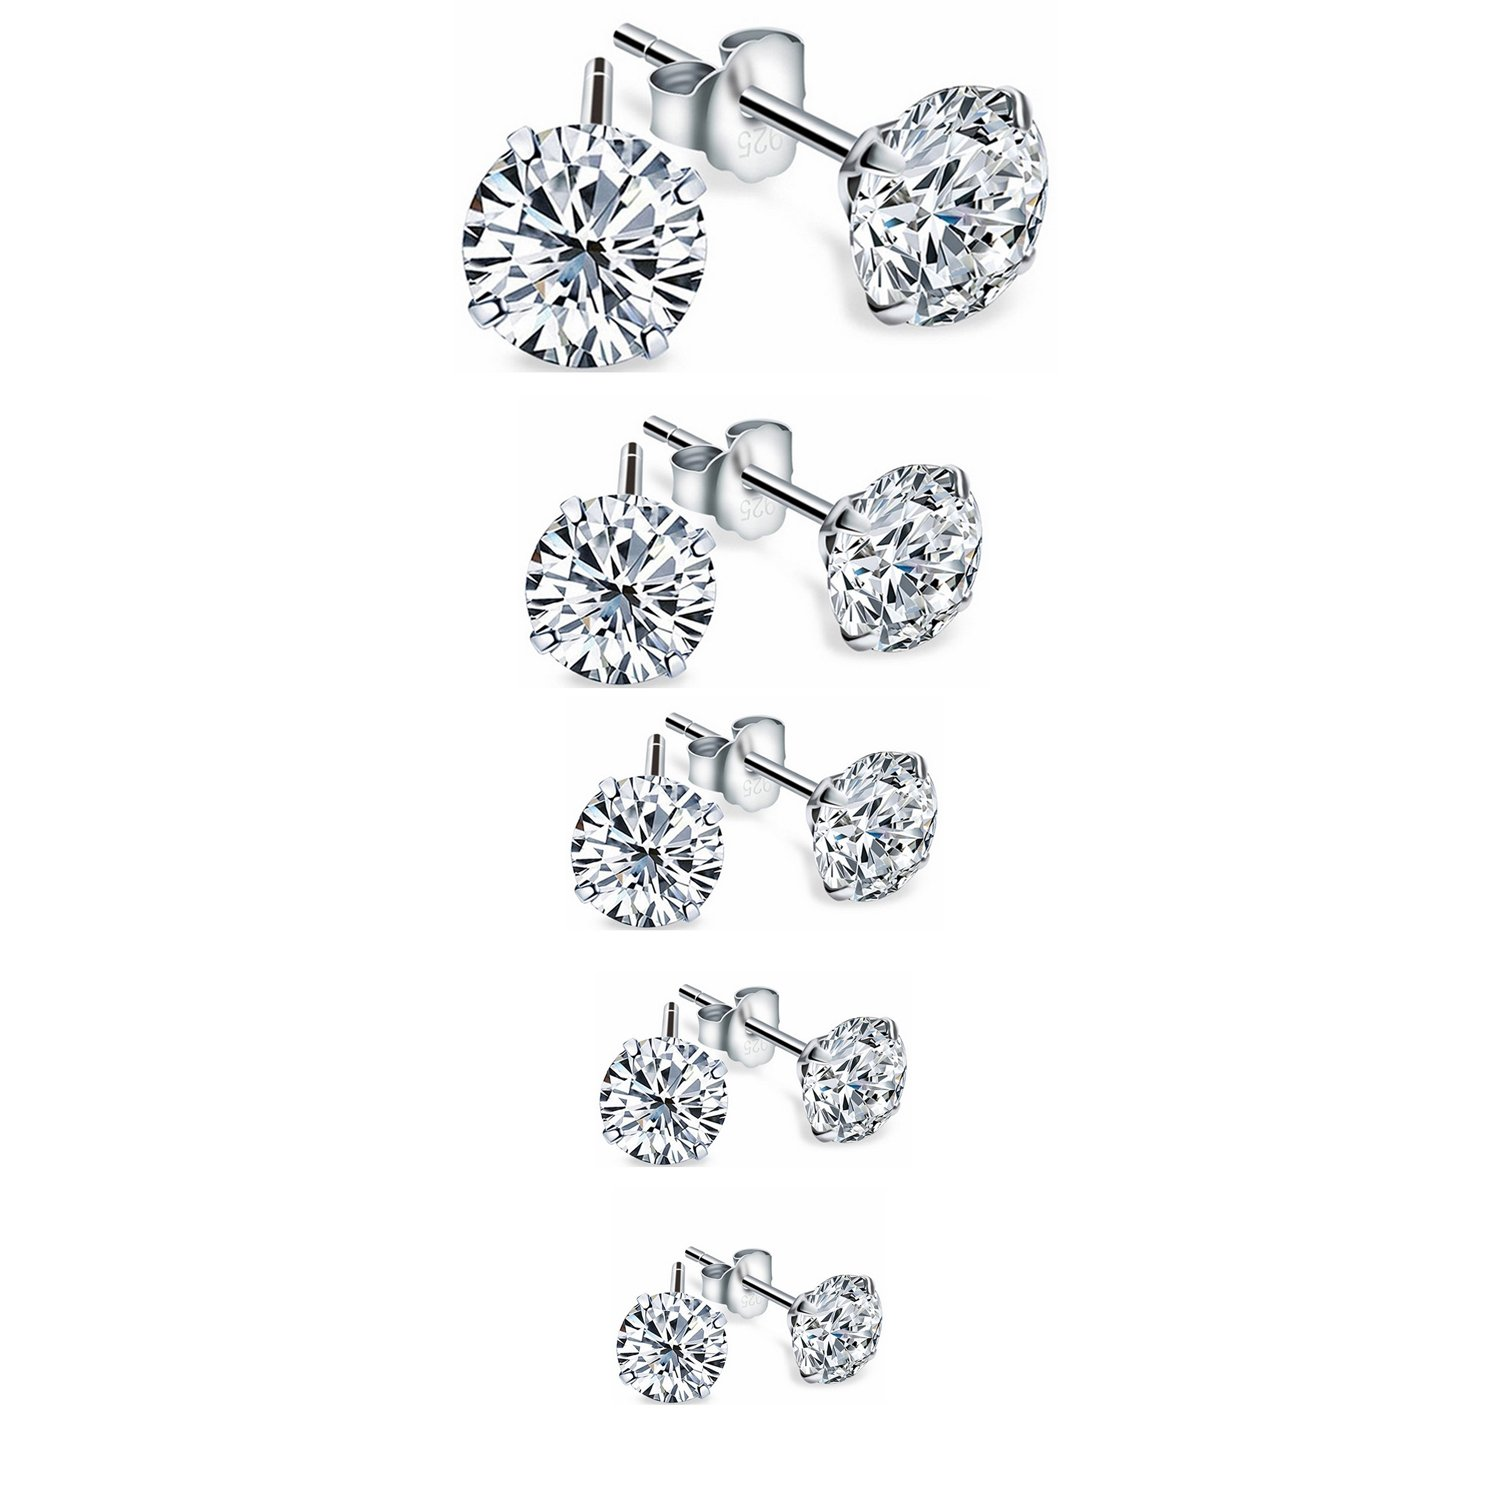 Zealmer Silver Stud Earrings Set Clear Rhinestone Cubic Zirconia CZ 5 Pairs with Gift Box for Valentine's Day